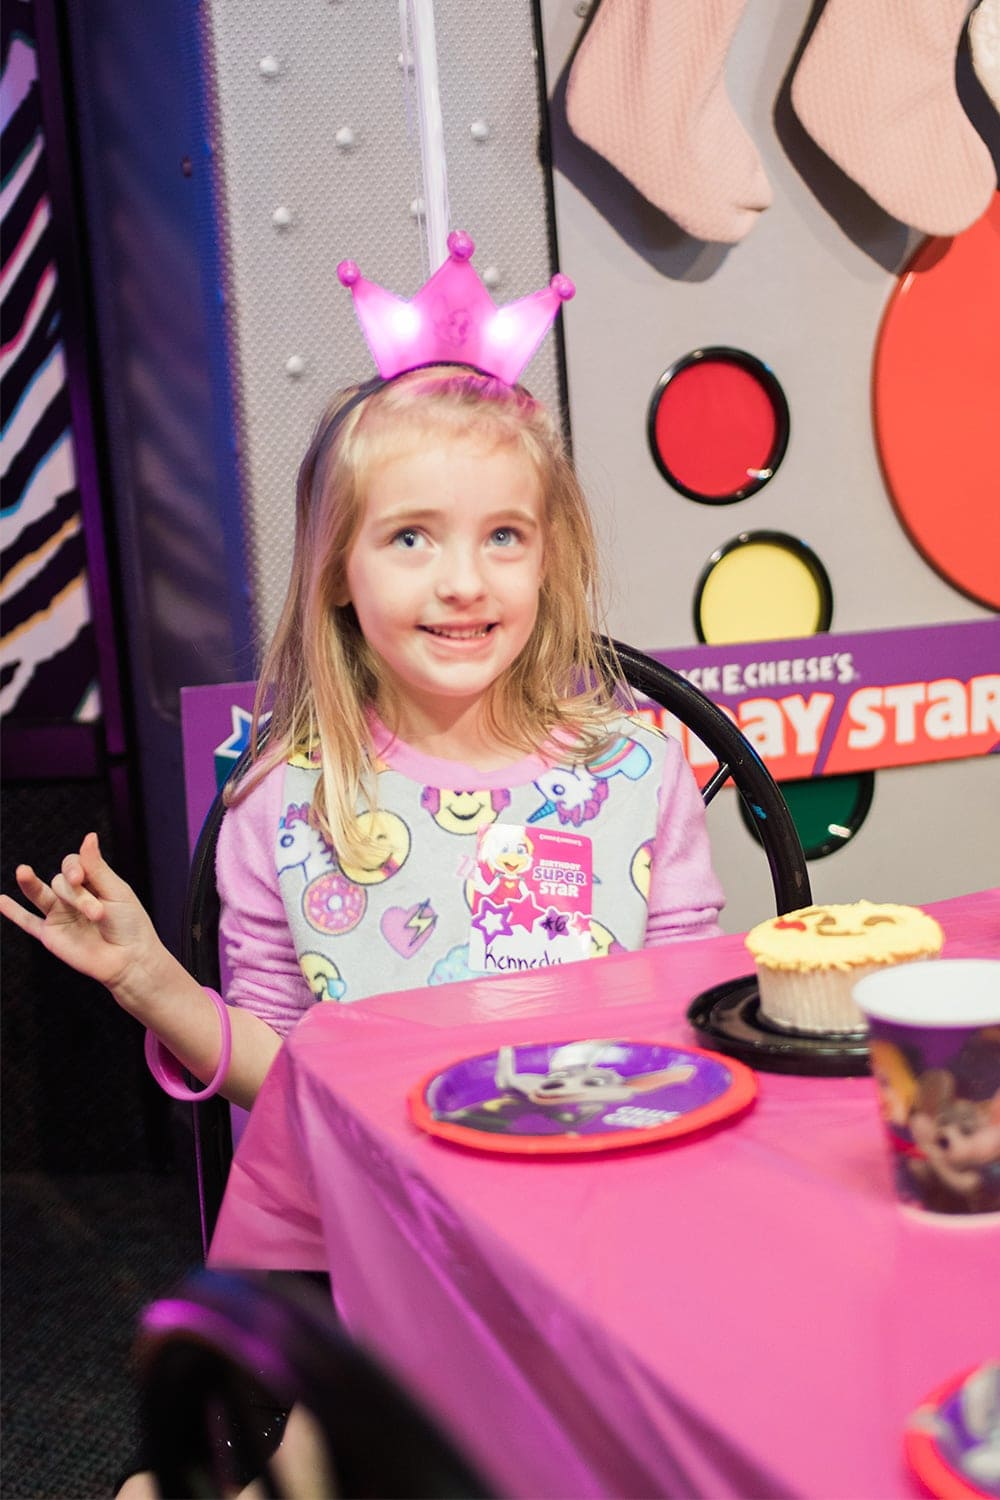 kids birthday party at Chuck E. Cheese